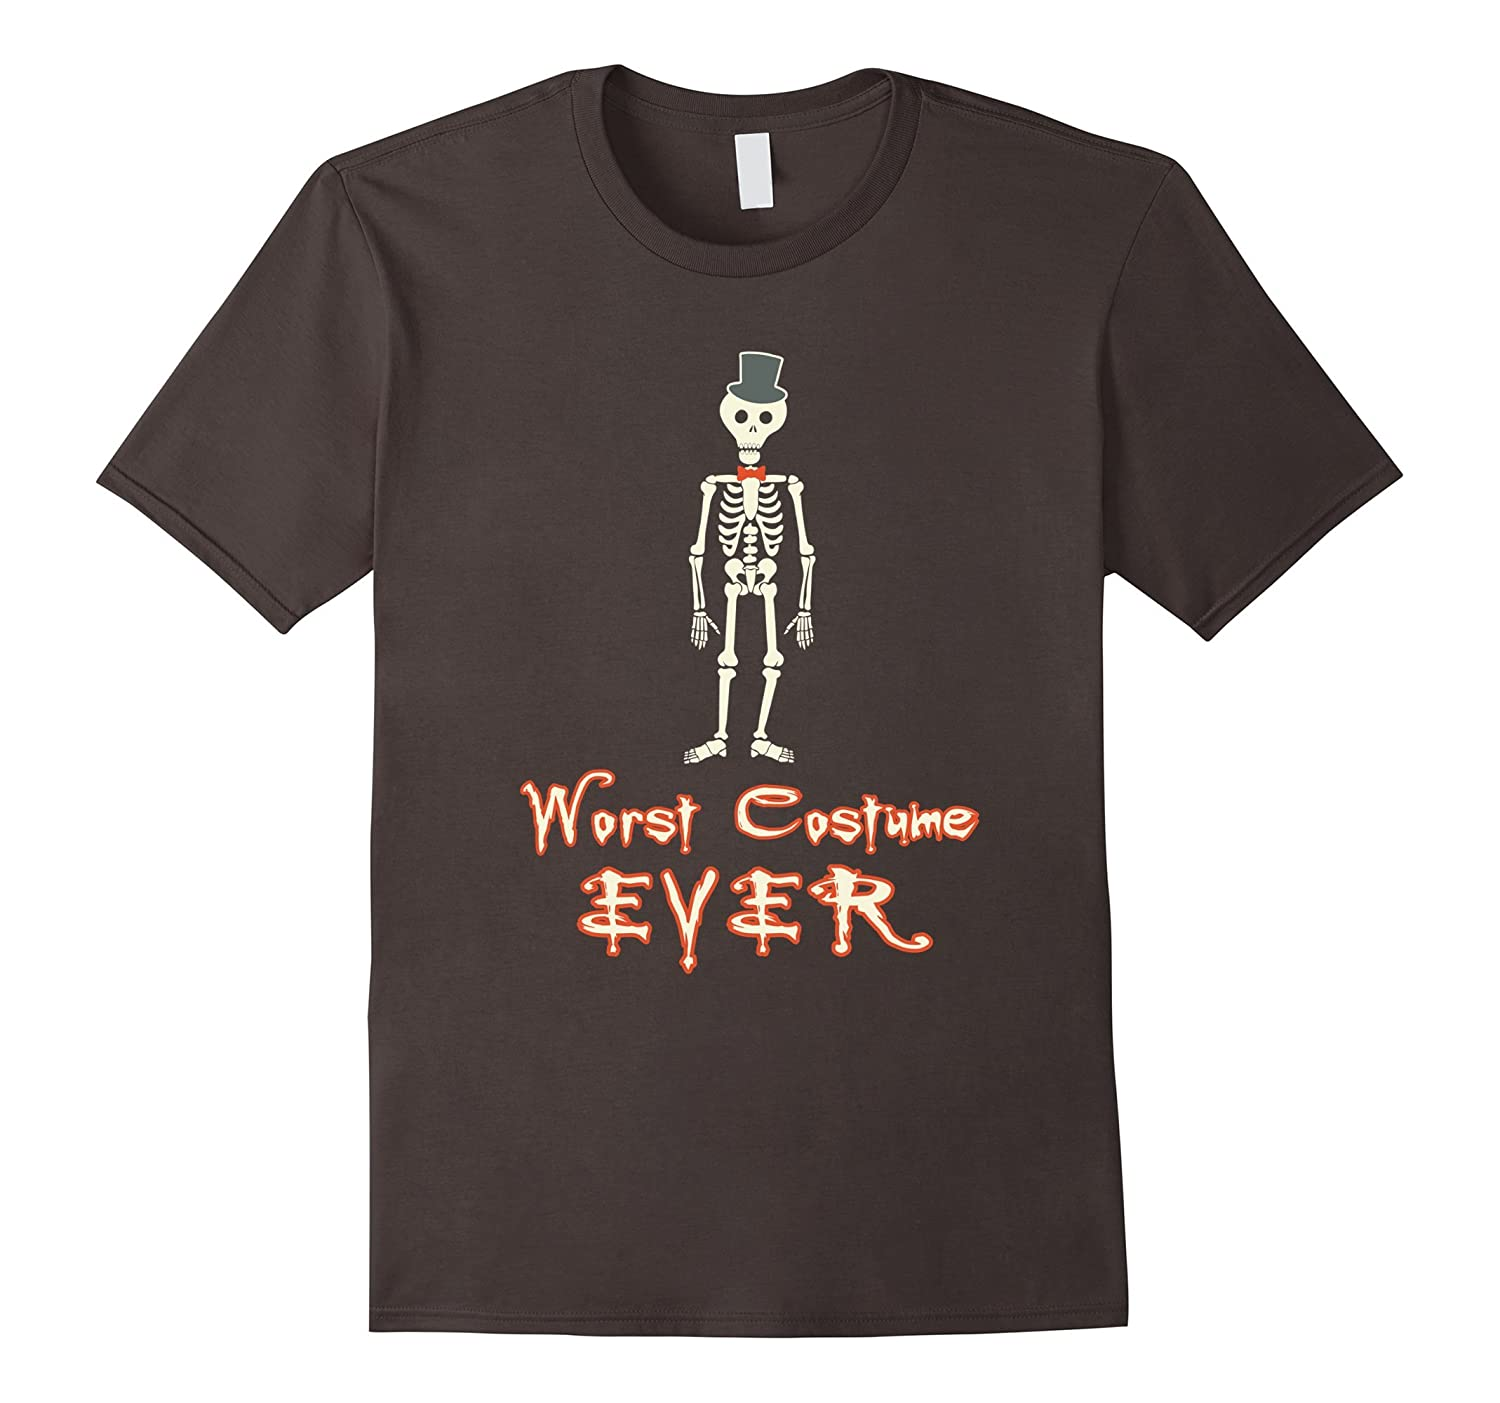 Worst Costume Ever Funny Novelty Halloween t-Shirt-RT